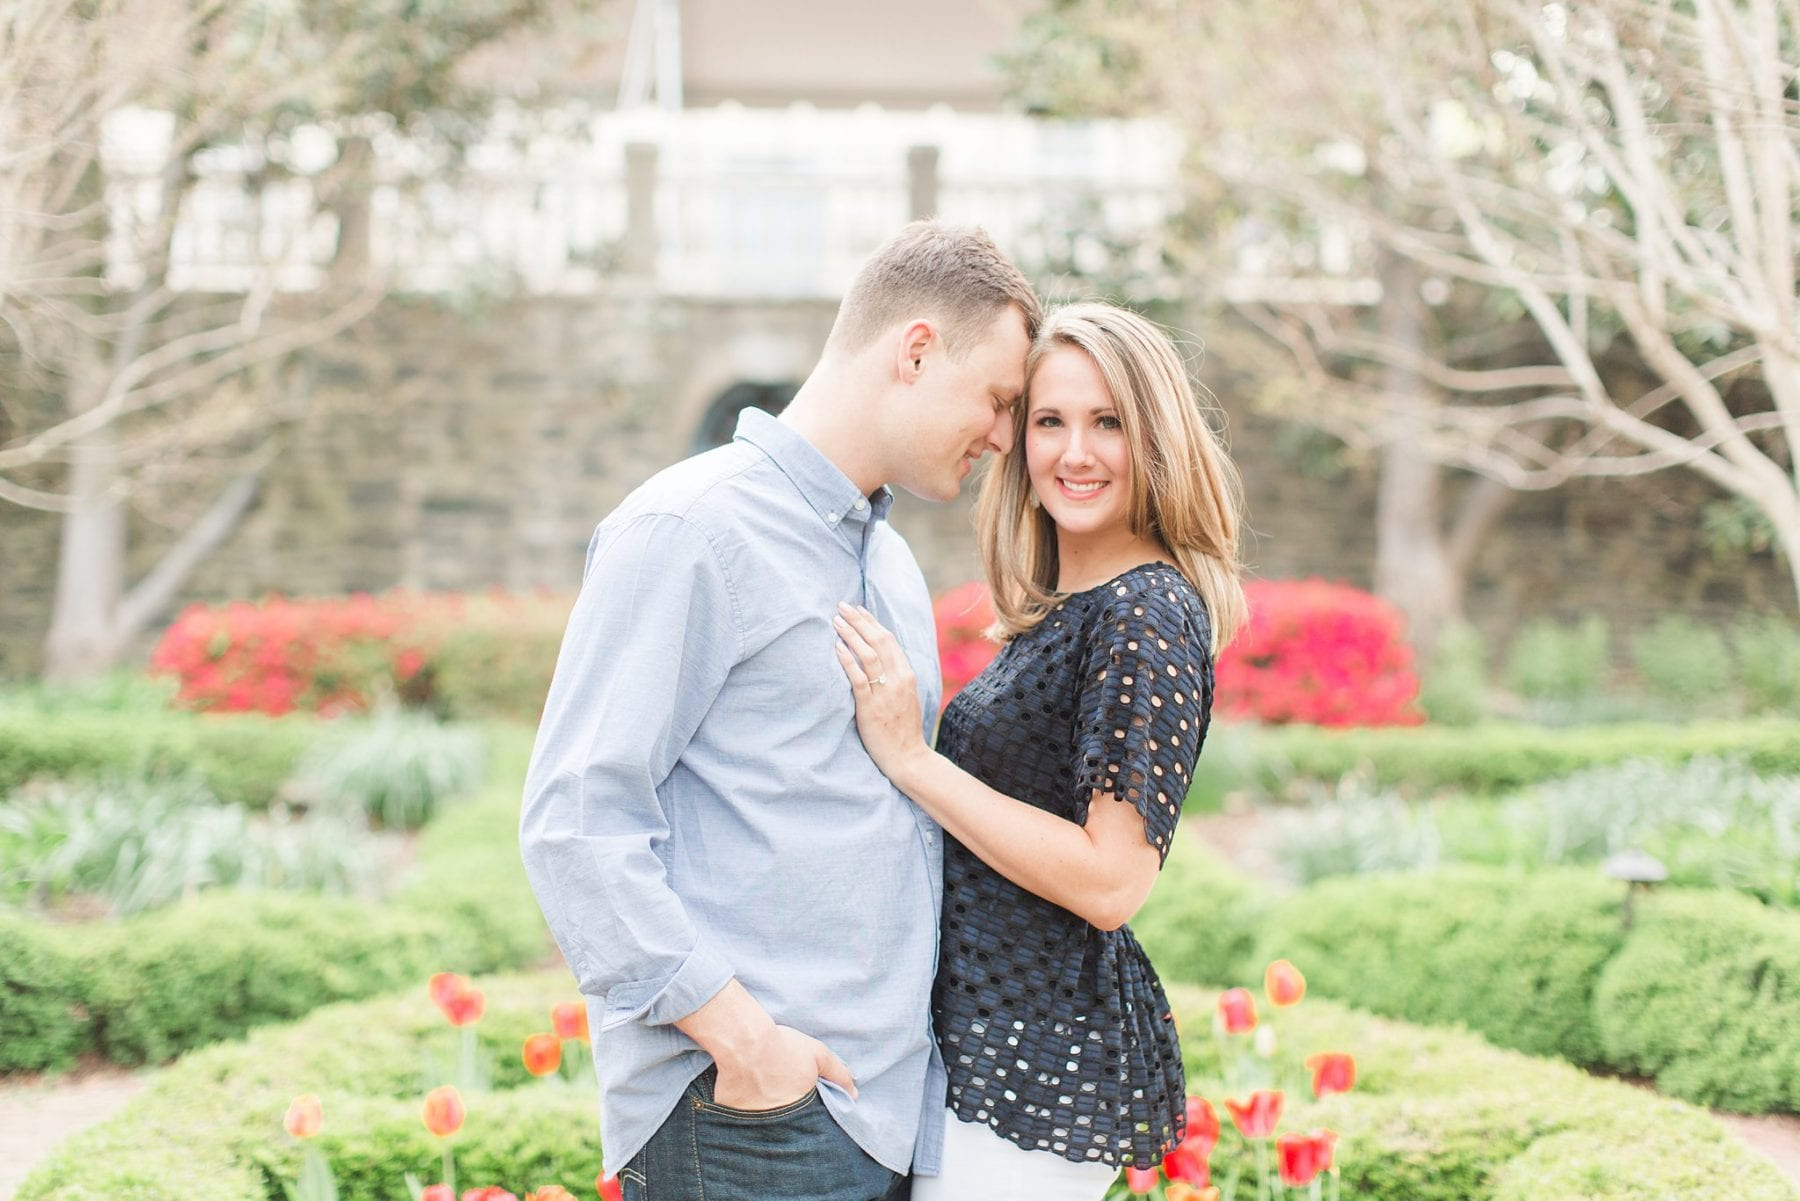 Springtime Old Town Alexandria Engagement Session Matt & Maxie Megan Kelsey Photography-257.jpg